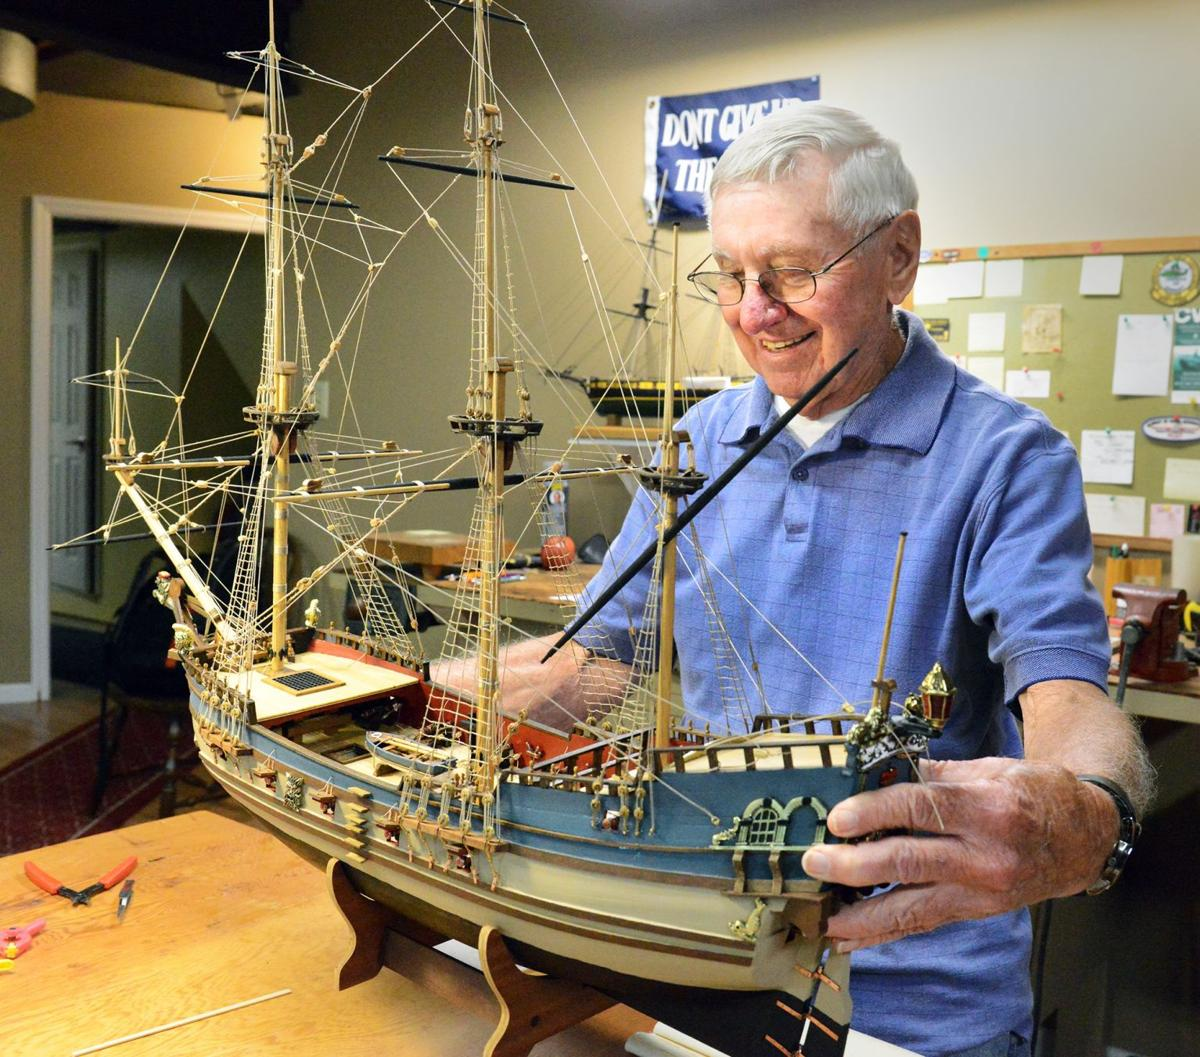 Retired McMurray man uses expertise to build model ships ...